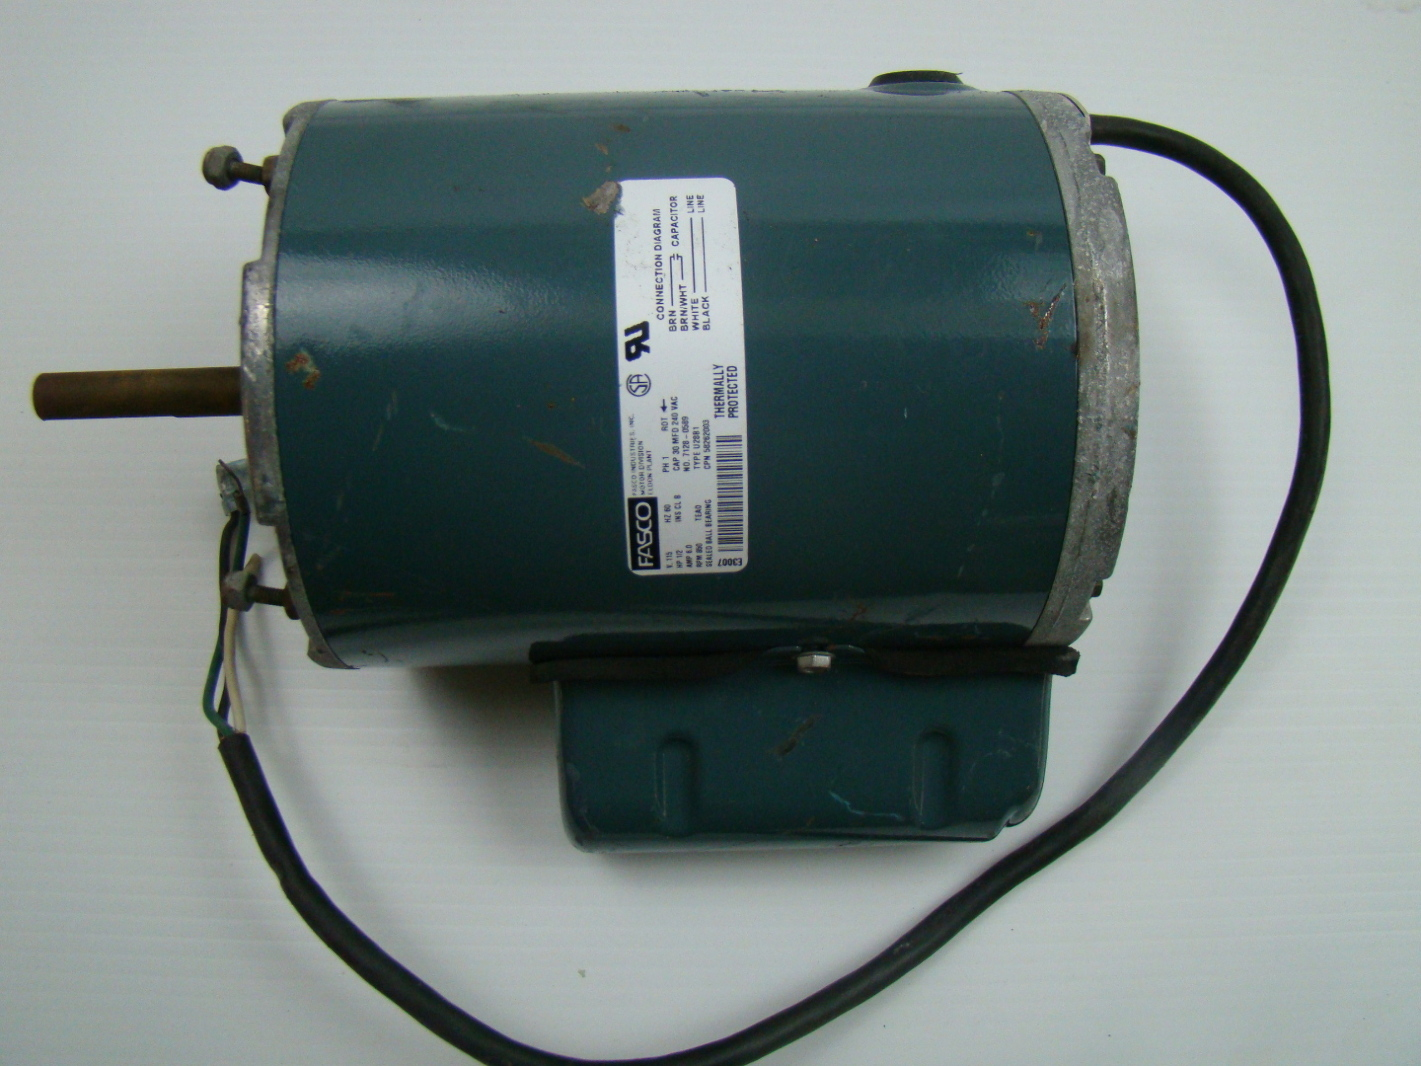 Fasco 1 2 hp electric motor 115v 7128 0589 ebay for 1 2 hp ac motor